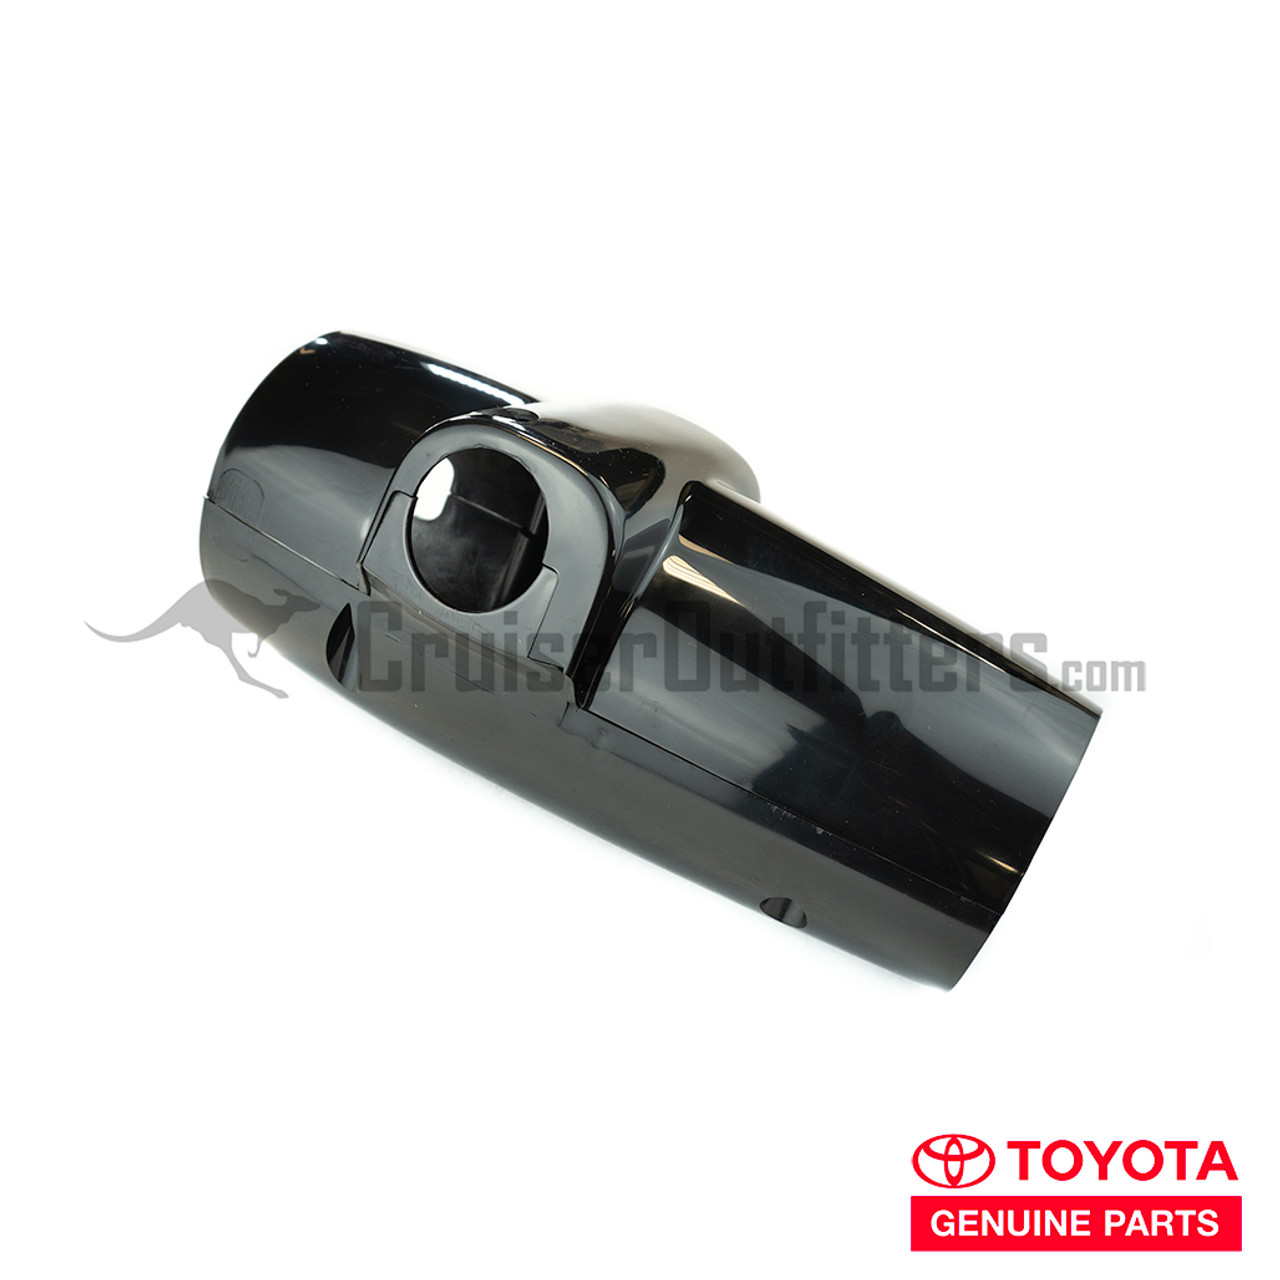 Steering Column Cover - OEM Toyota - Fits 1972 - 1984 4x Series (INT60909)